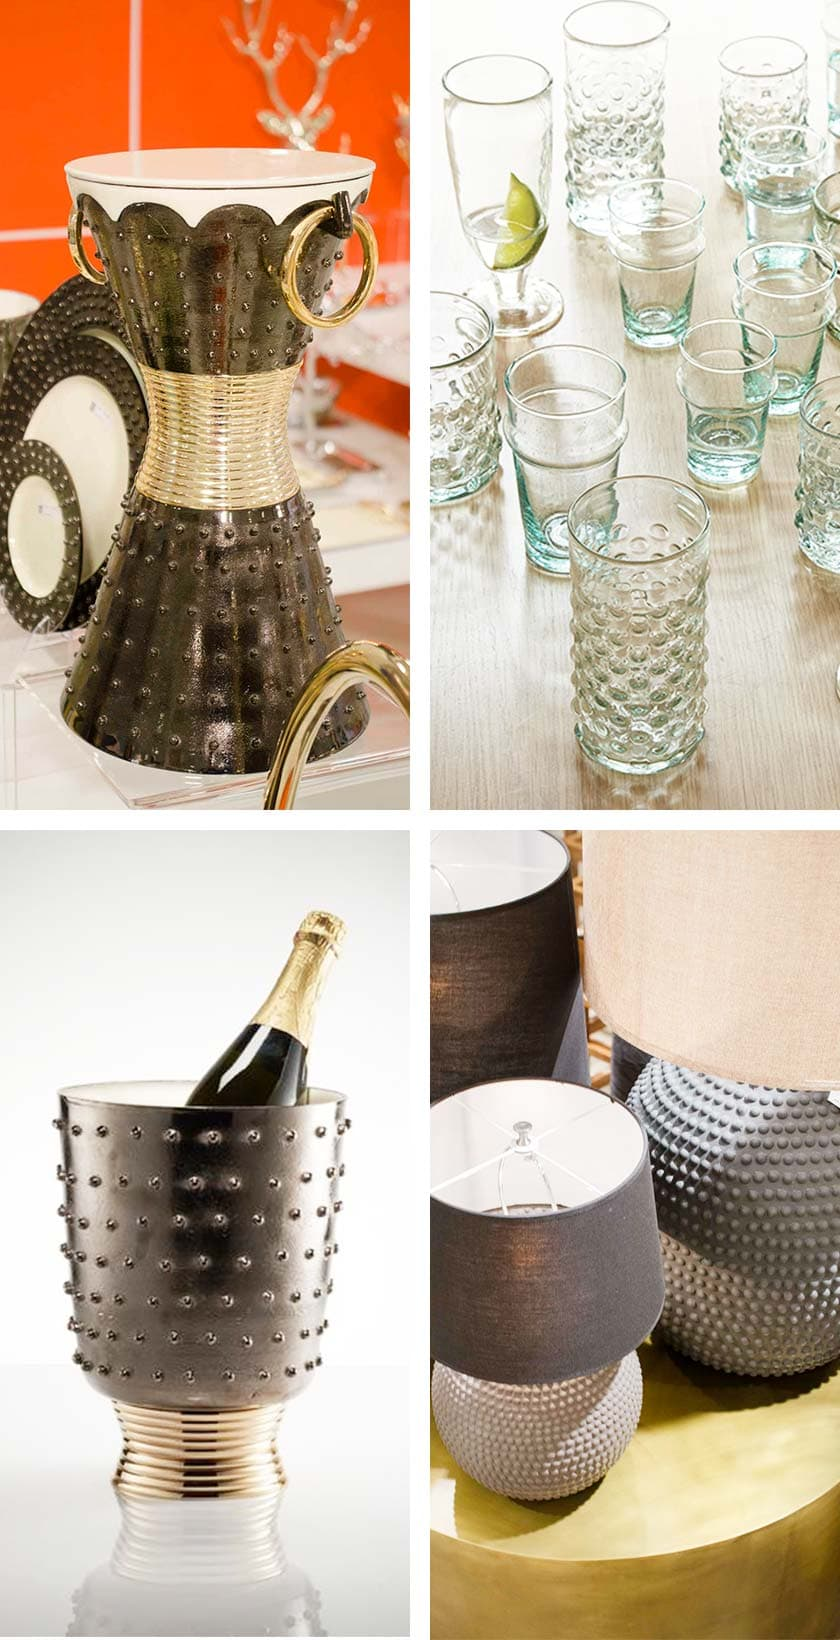 Hobnail design trend from AmericasMart on Thou Swell @thouswellblog